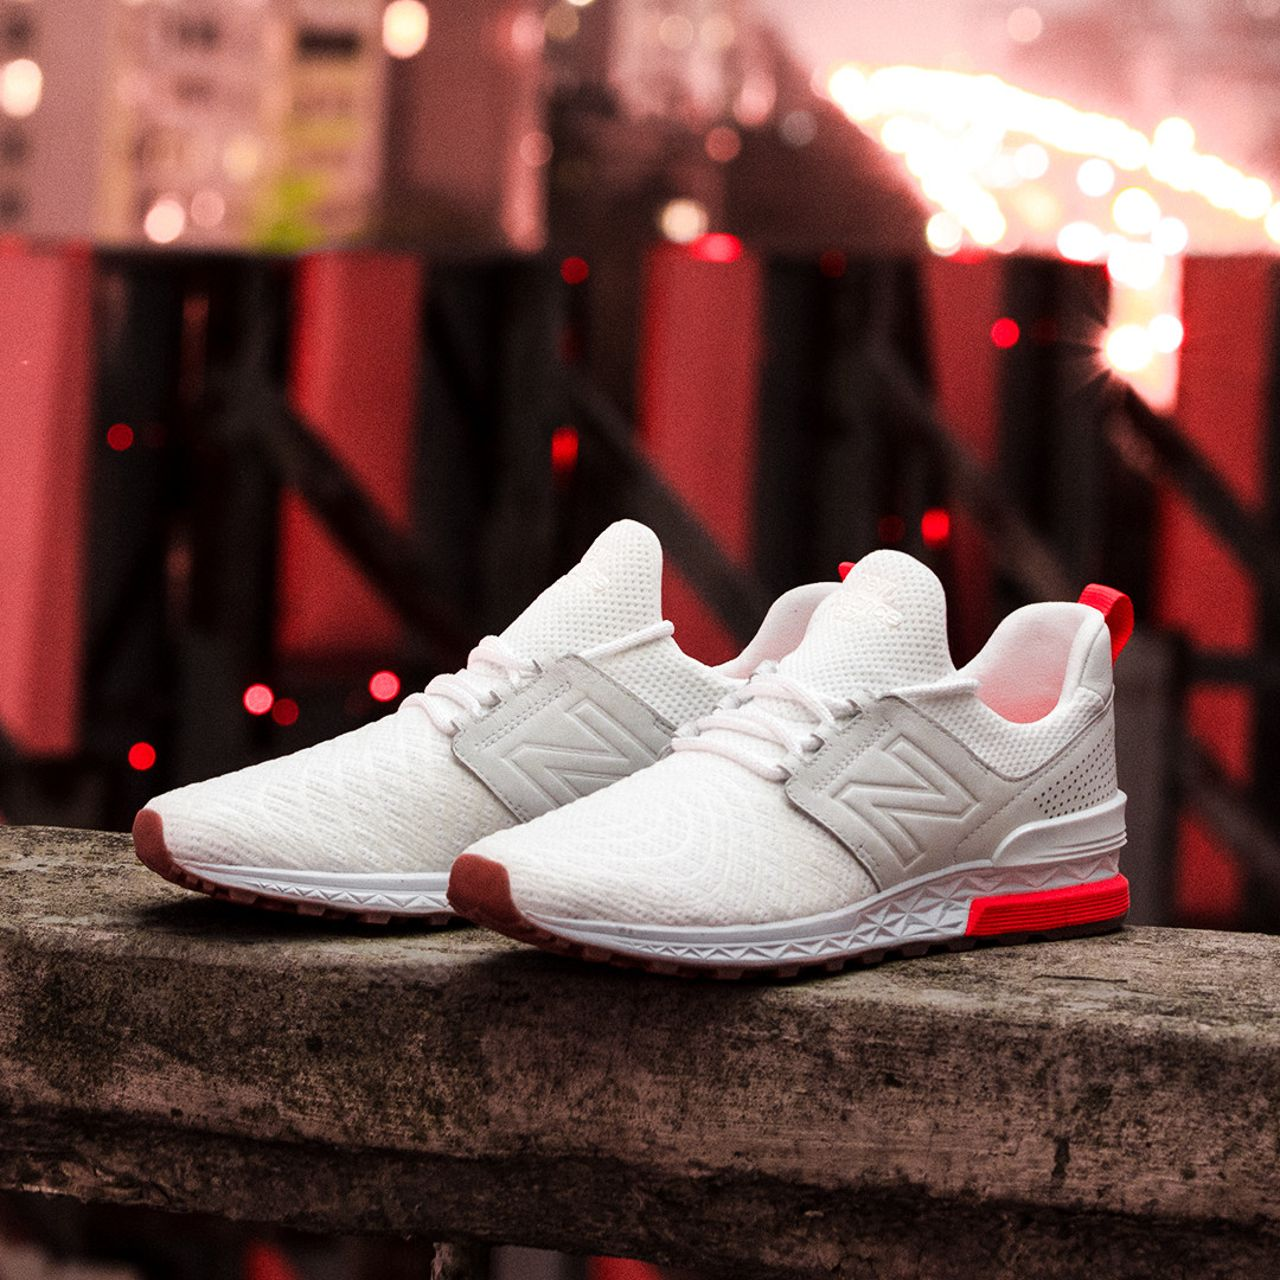 Der neue New Balance 574 Sport Tournament